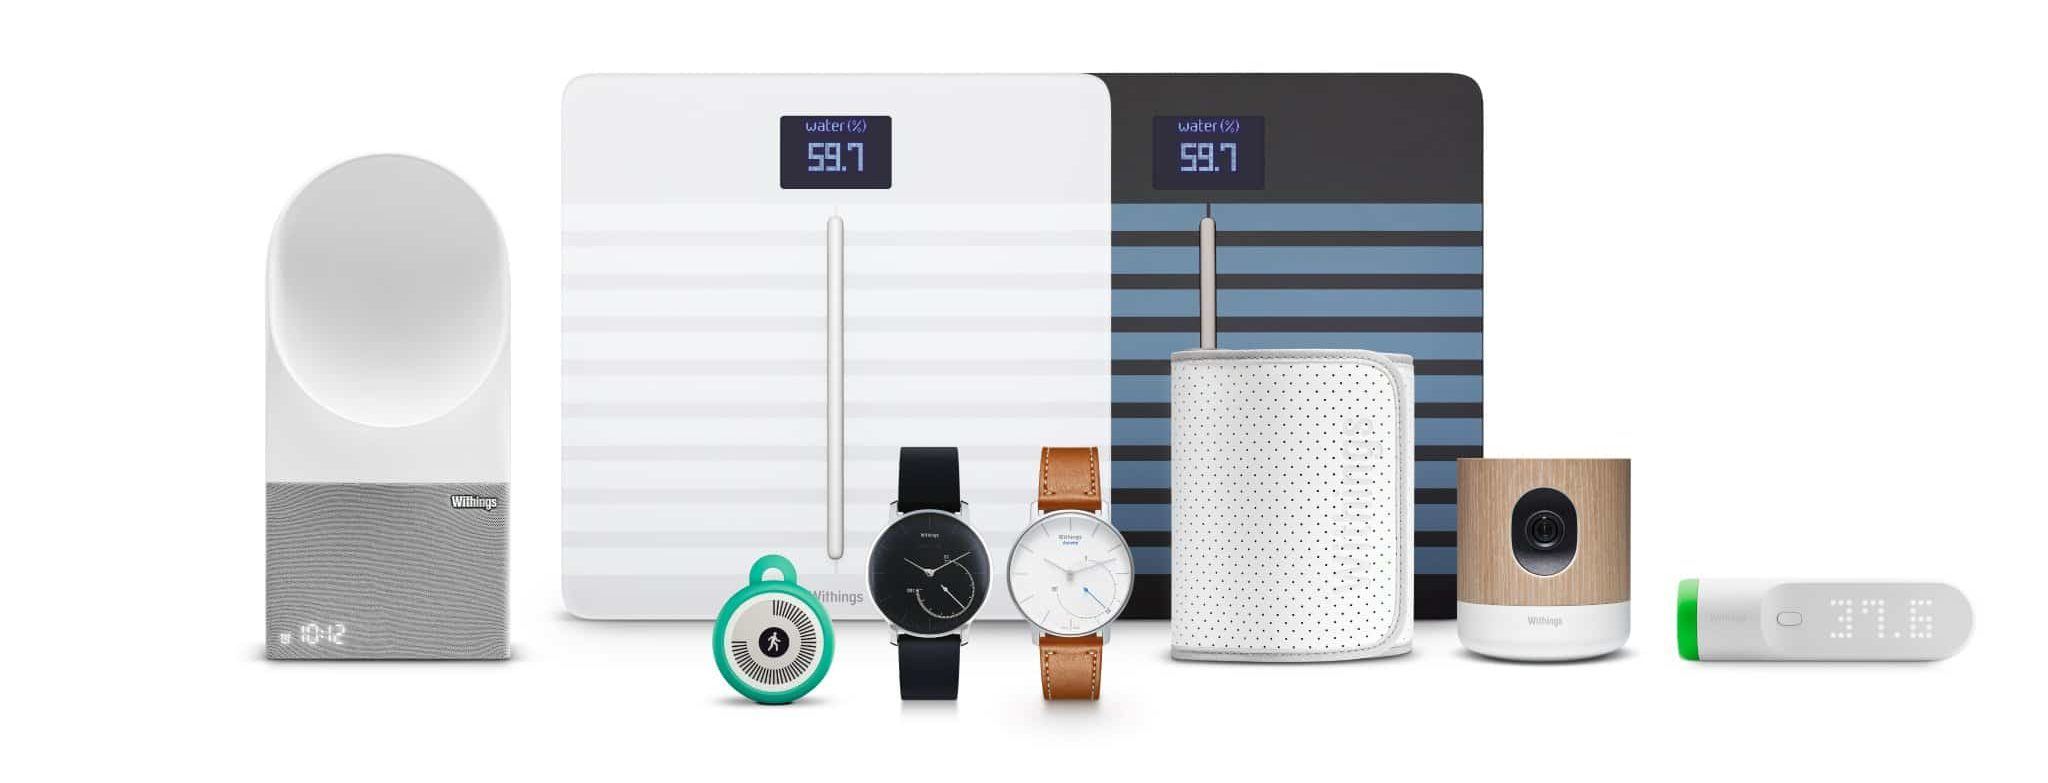 withings to rebrand under the nokia banner redesign health app 2 - Withings to rebrand under the Nokia banner, redesign Health app